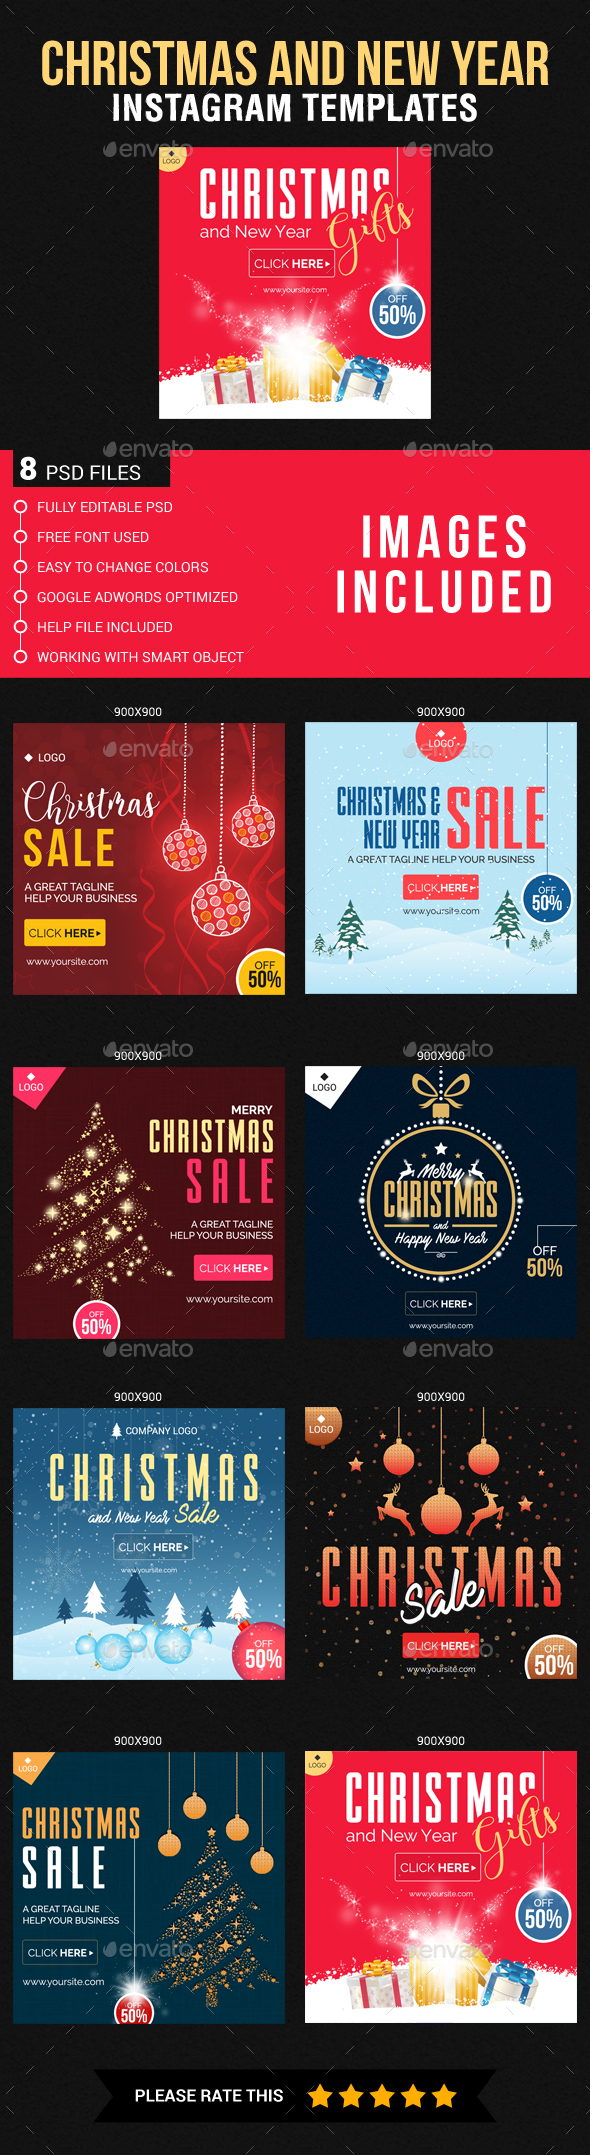 Christmas and New Year Instagram Templates - Banners & Ads Web Elements